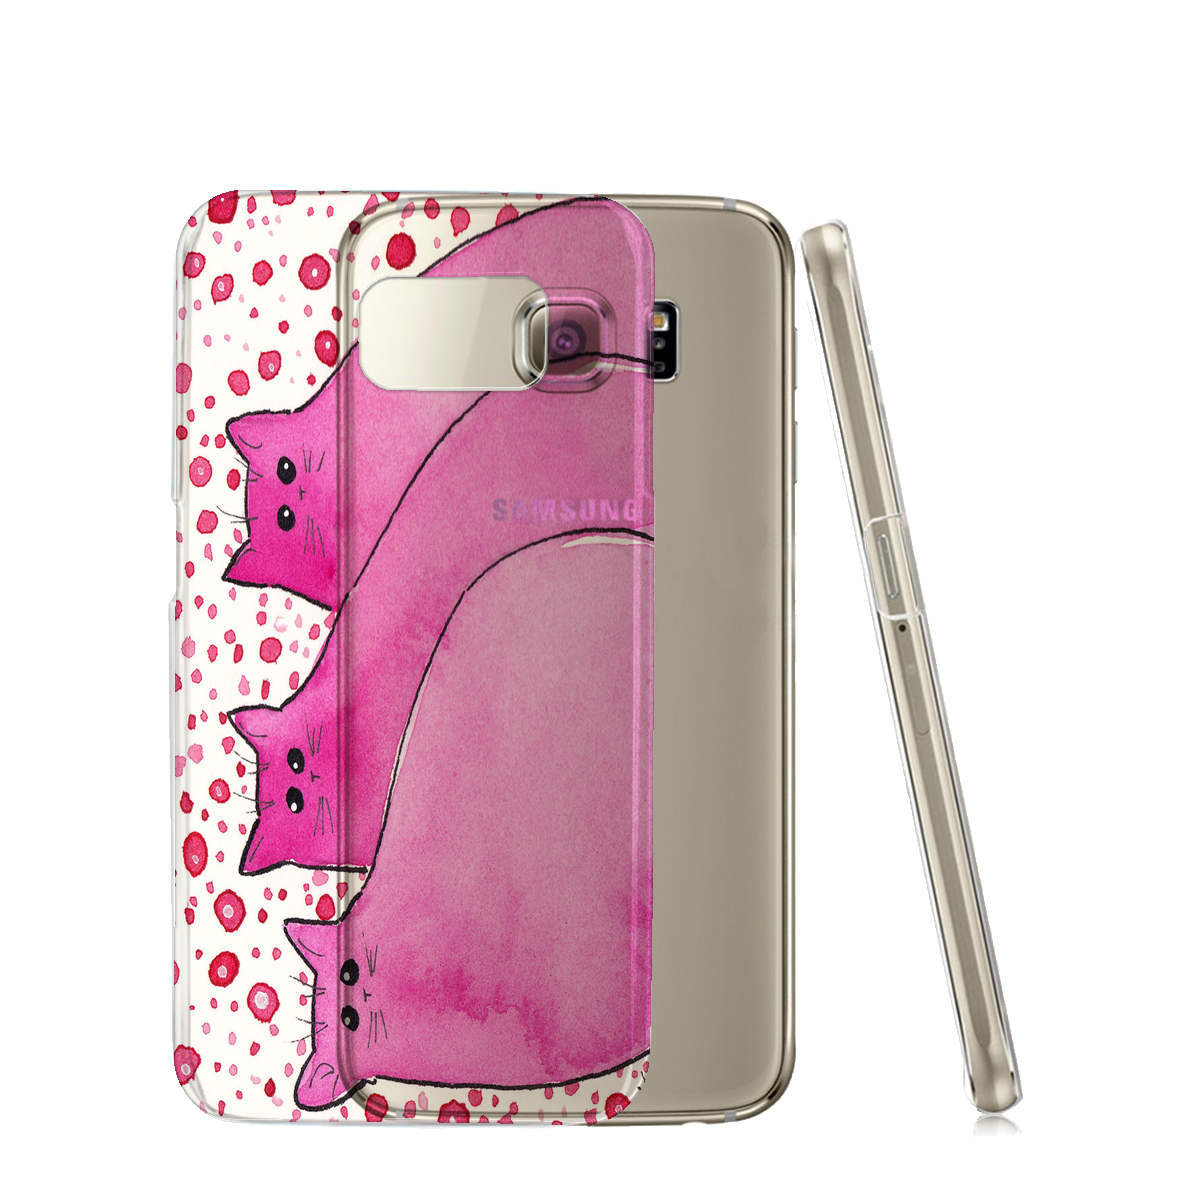 KuzmarK™ Samsung Galaxy S6 Edge Clear Cover Case - Cherry Pink Chunky Kitties Abstract Cat Art by Denise Every